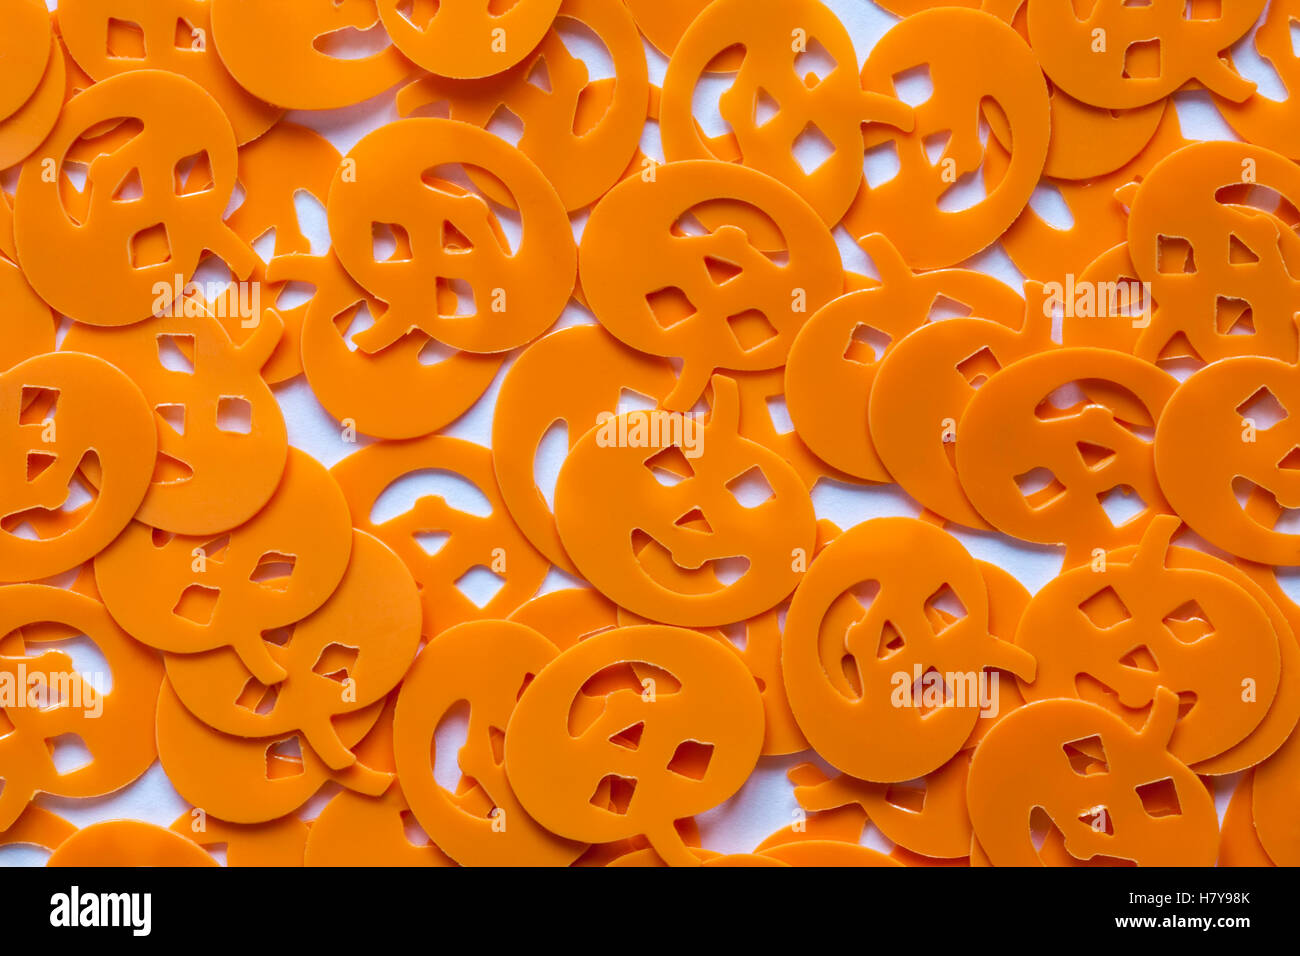 Halloween Mystical Confetti - pumpkins faces decorations spread out - Stock Image